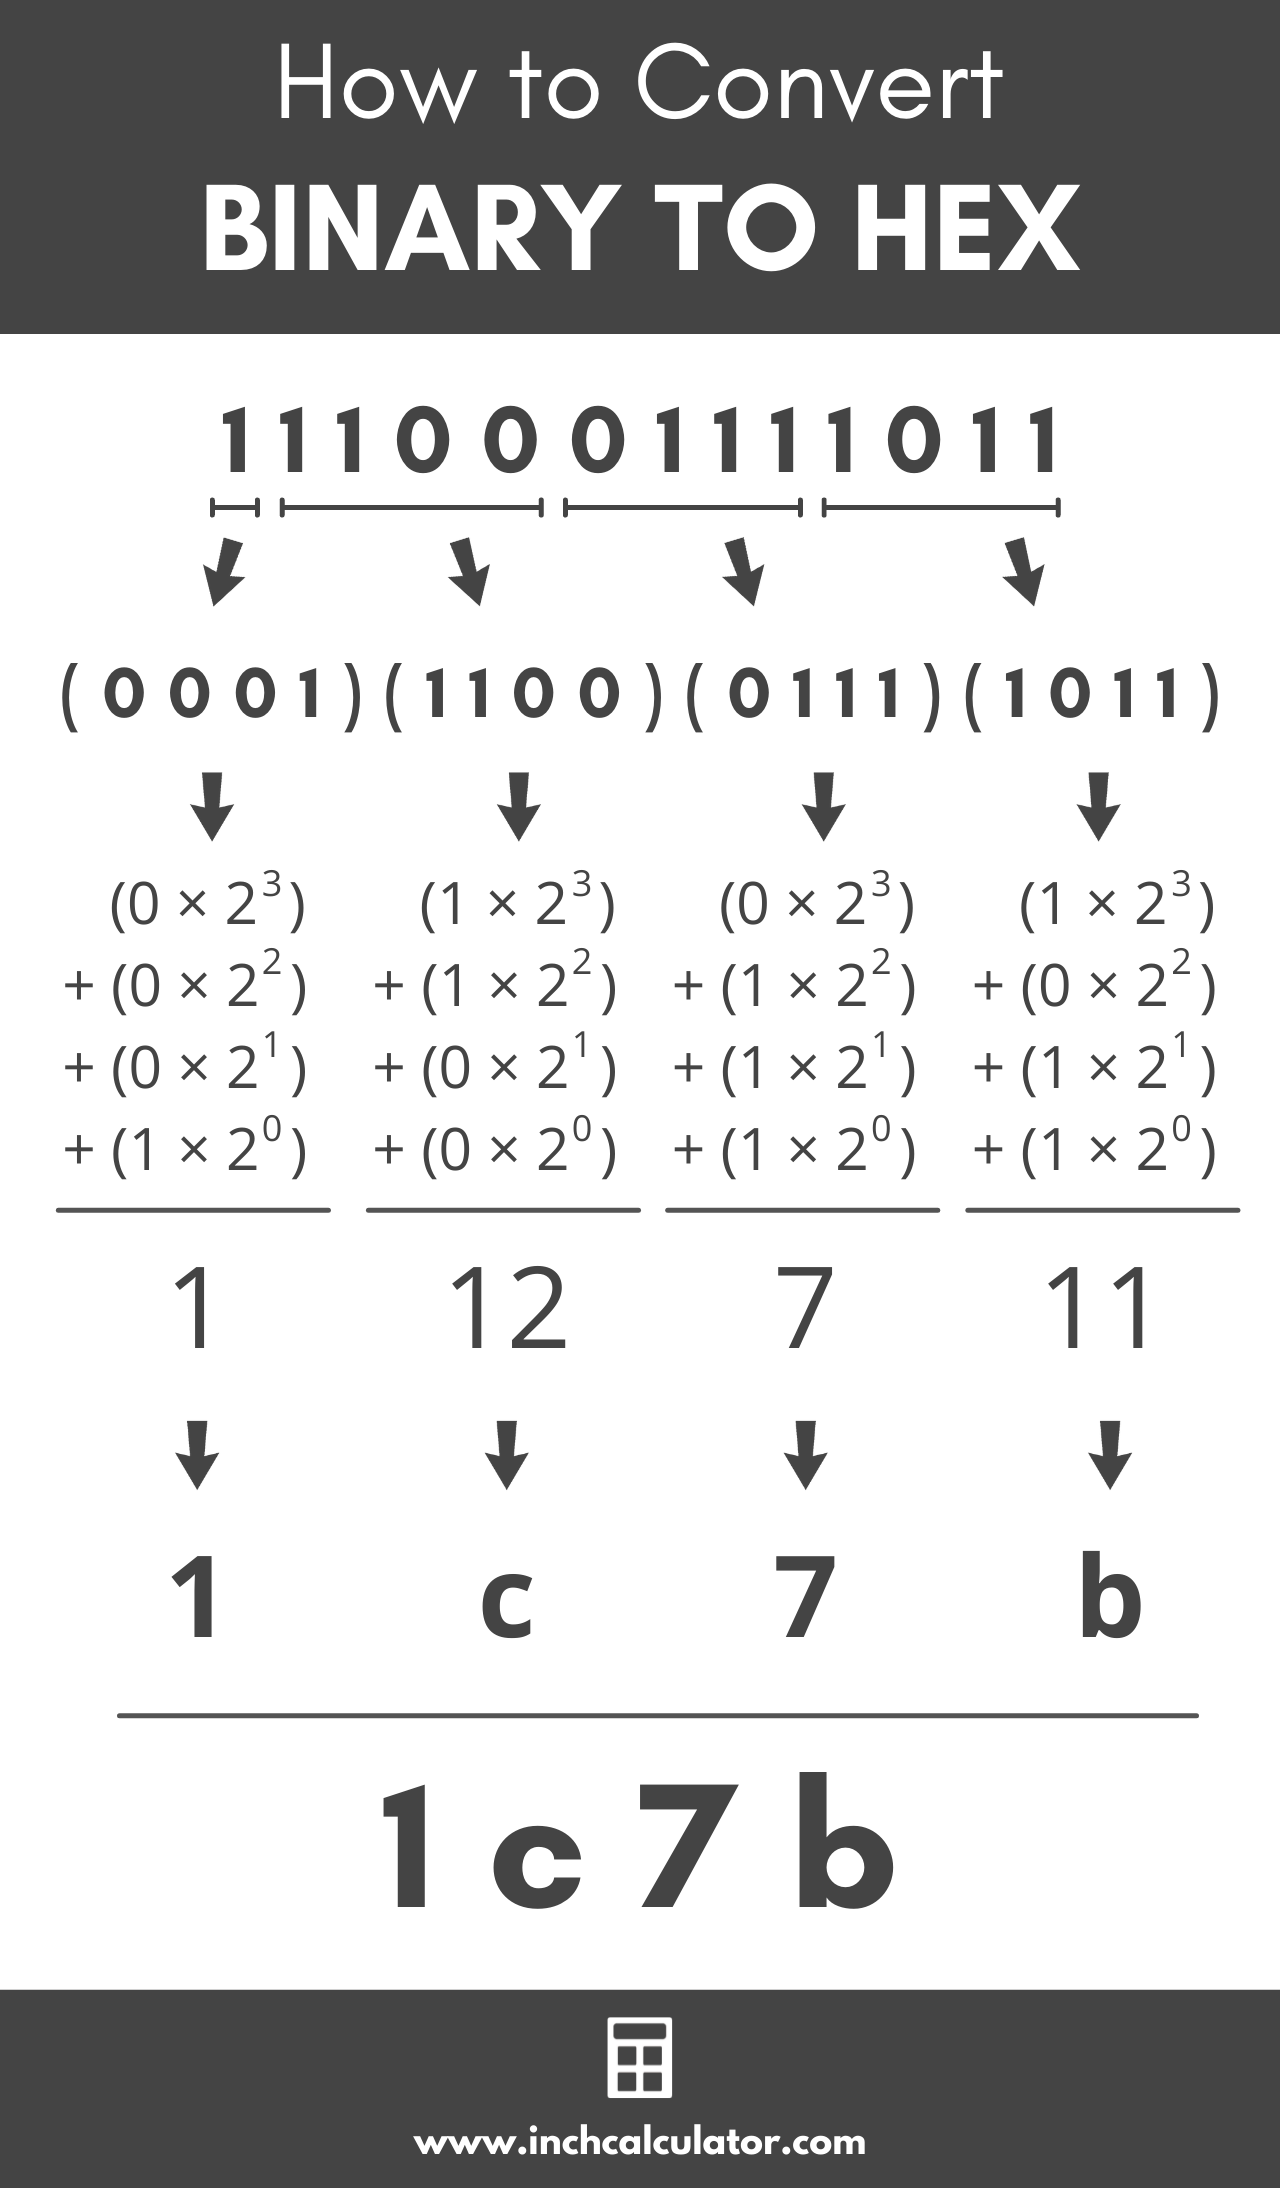 graphic showing how to convert a binary number to hexadecimal